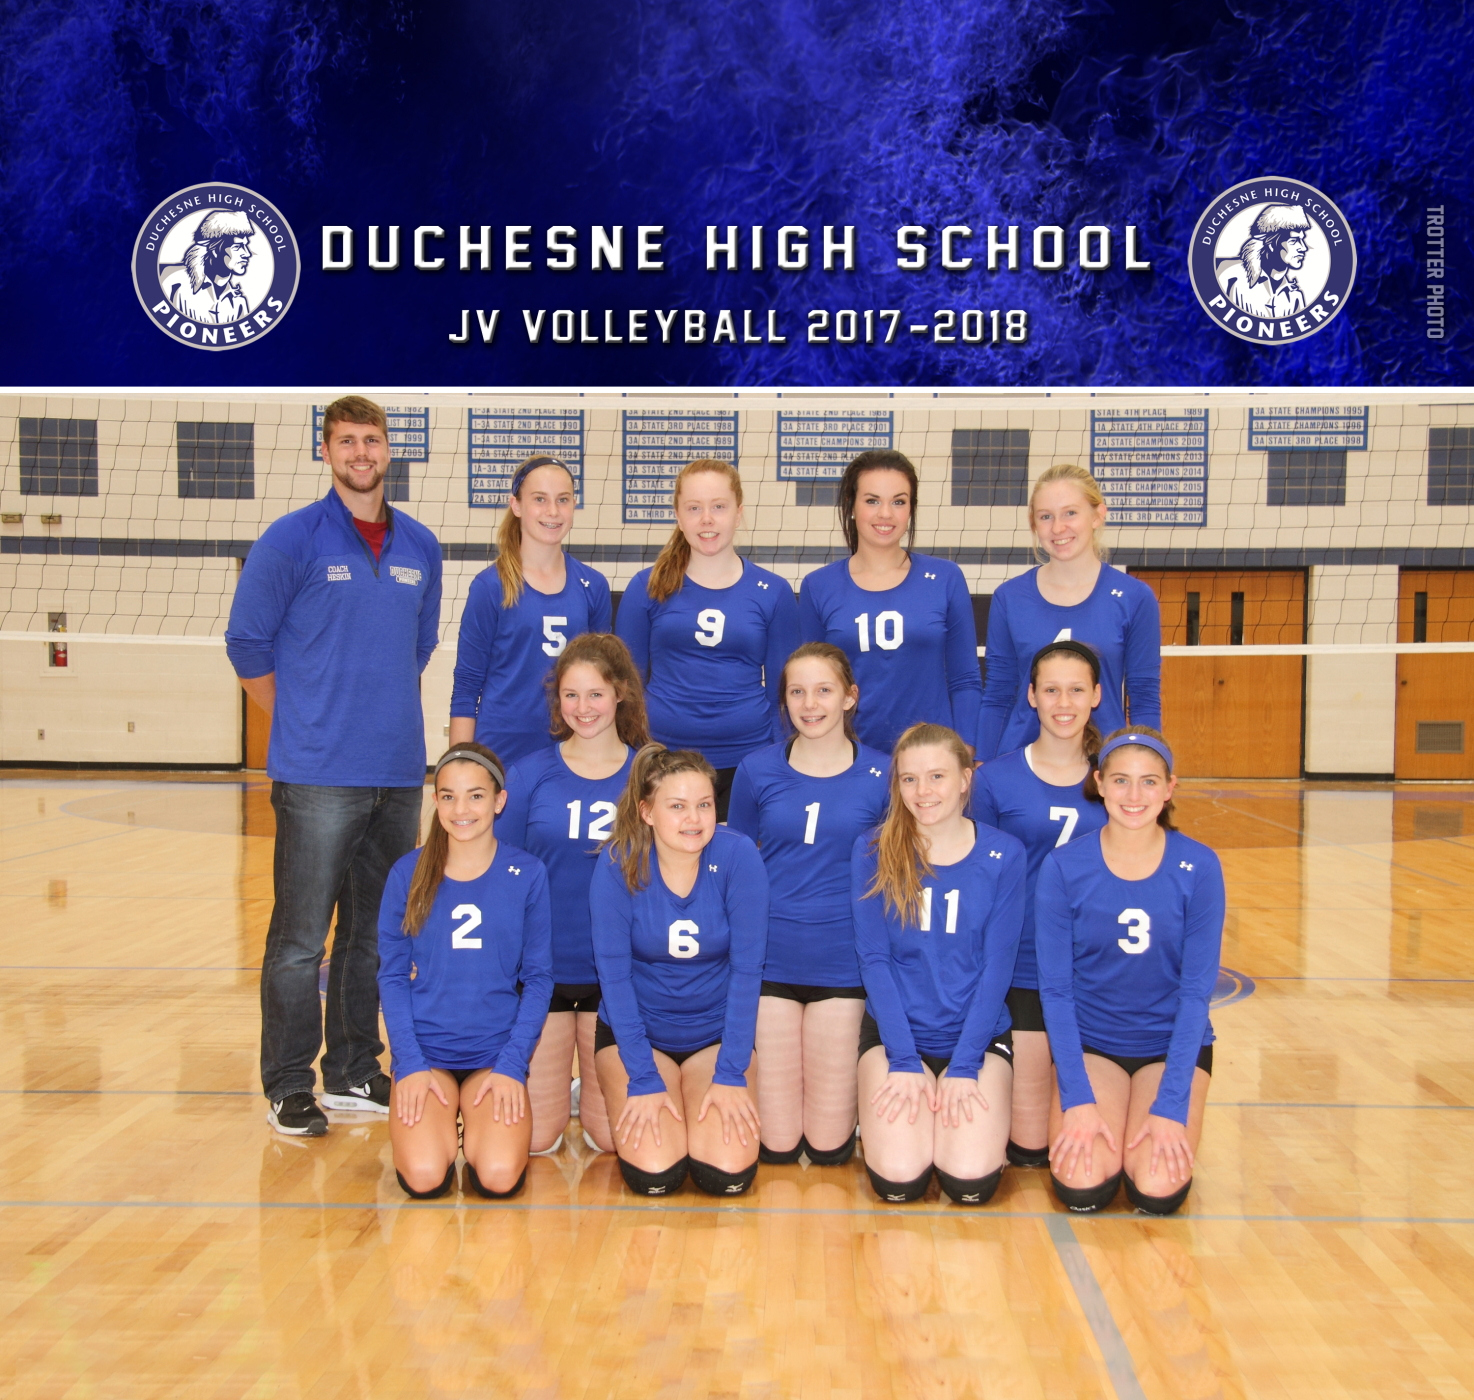 Duchesne High School House Raffle Duchesne High School Girls Volleyball